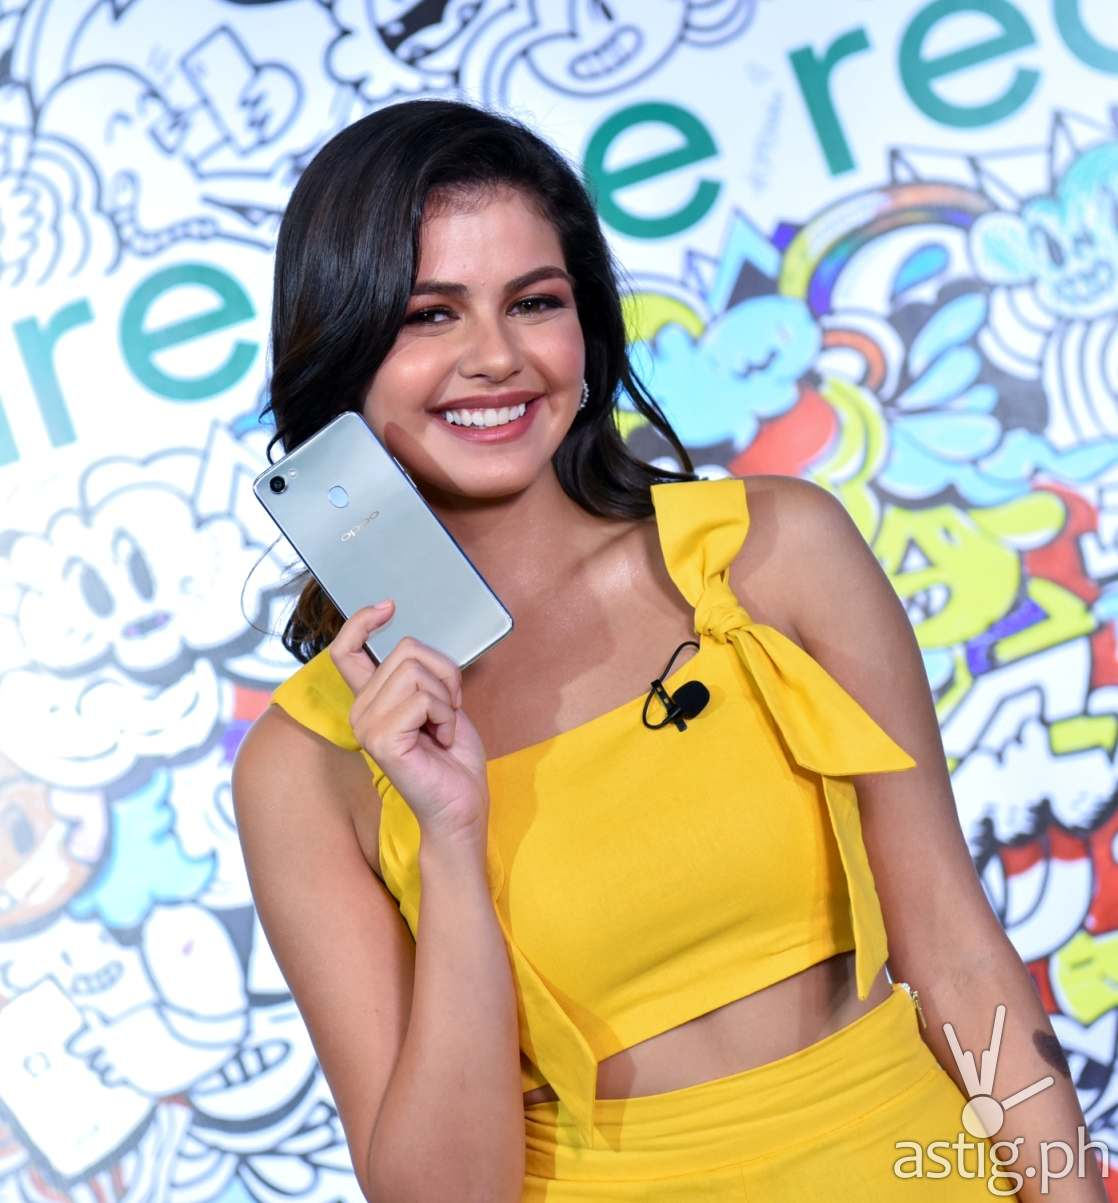 Janine Gutierrez showcases the OPPO F7